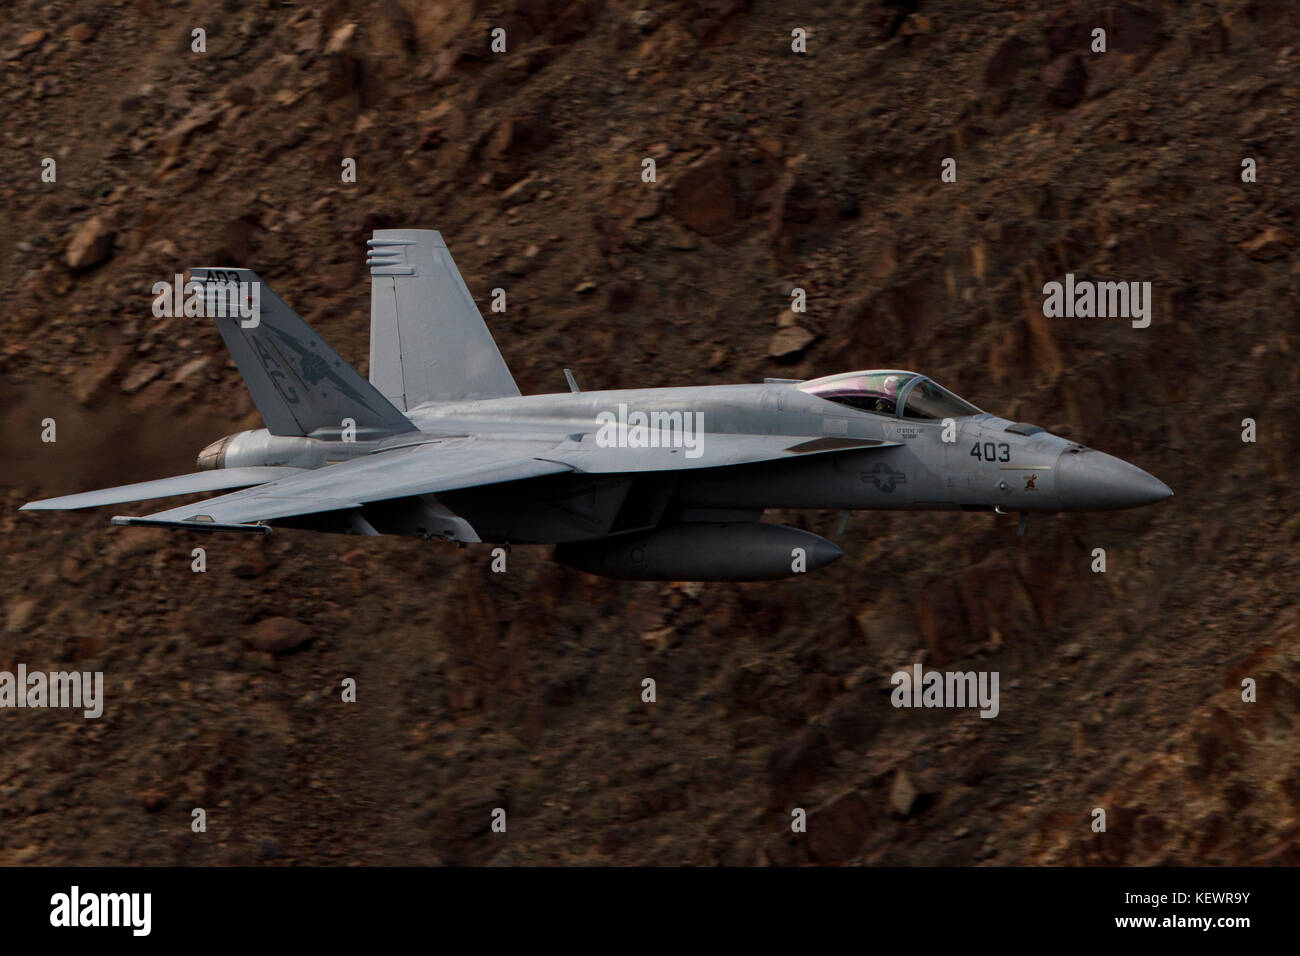 Boeing F/A-18E Super Hornet from United States Navy squadron VFA-25 Fist of the Fleet (AG 403) flies low level through Stock Photo